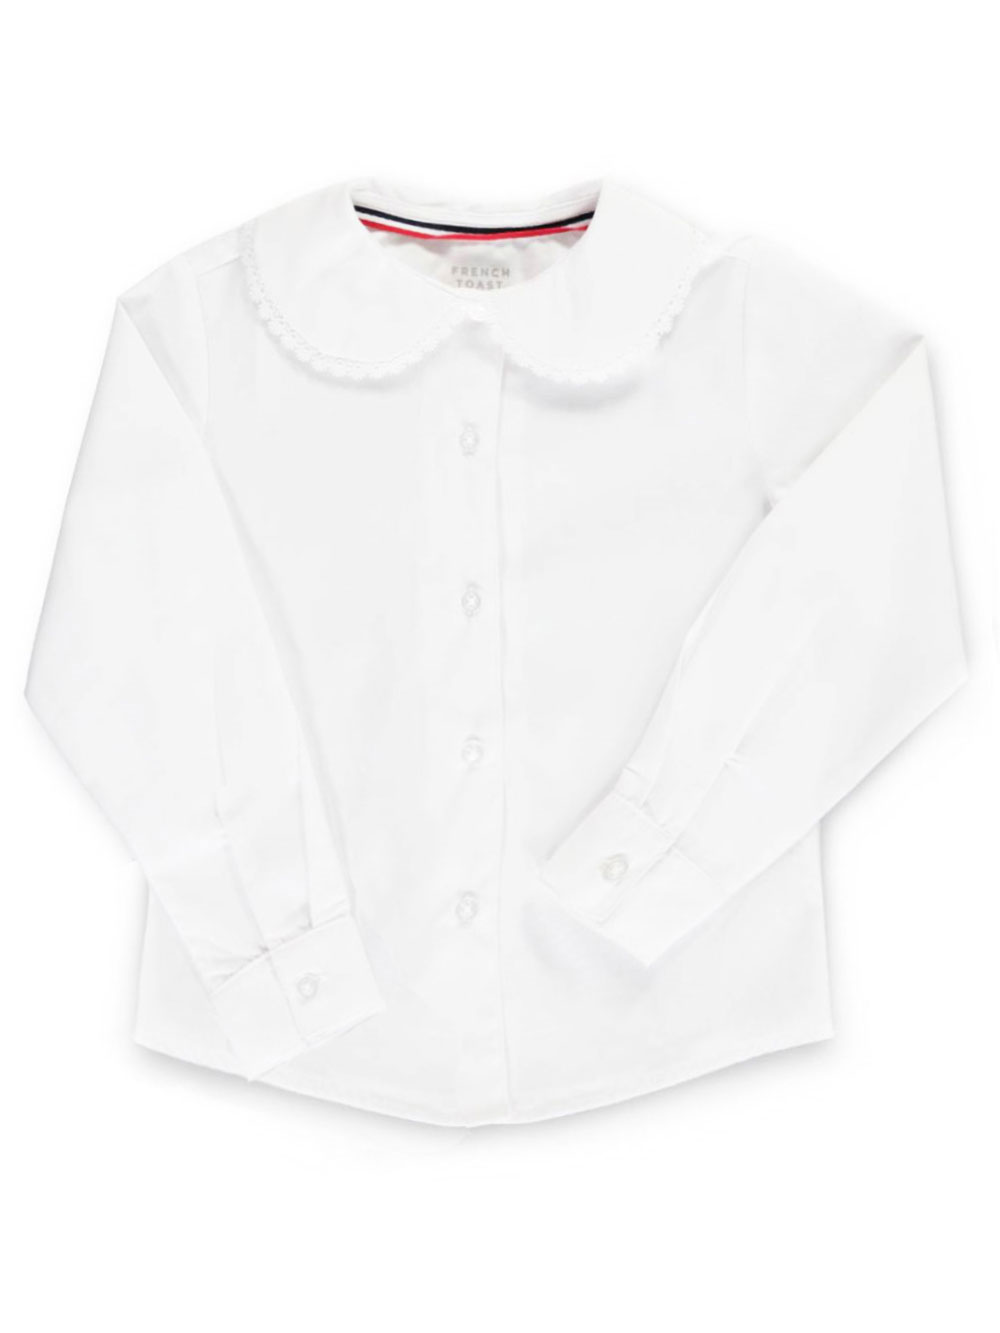 Image of French Toast School Uniform LS Blouse with Picot Edging Sizes 4  6X  white 6x